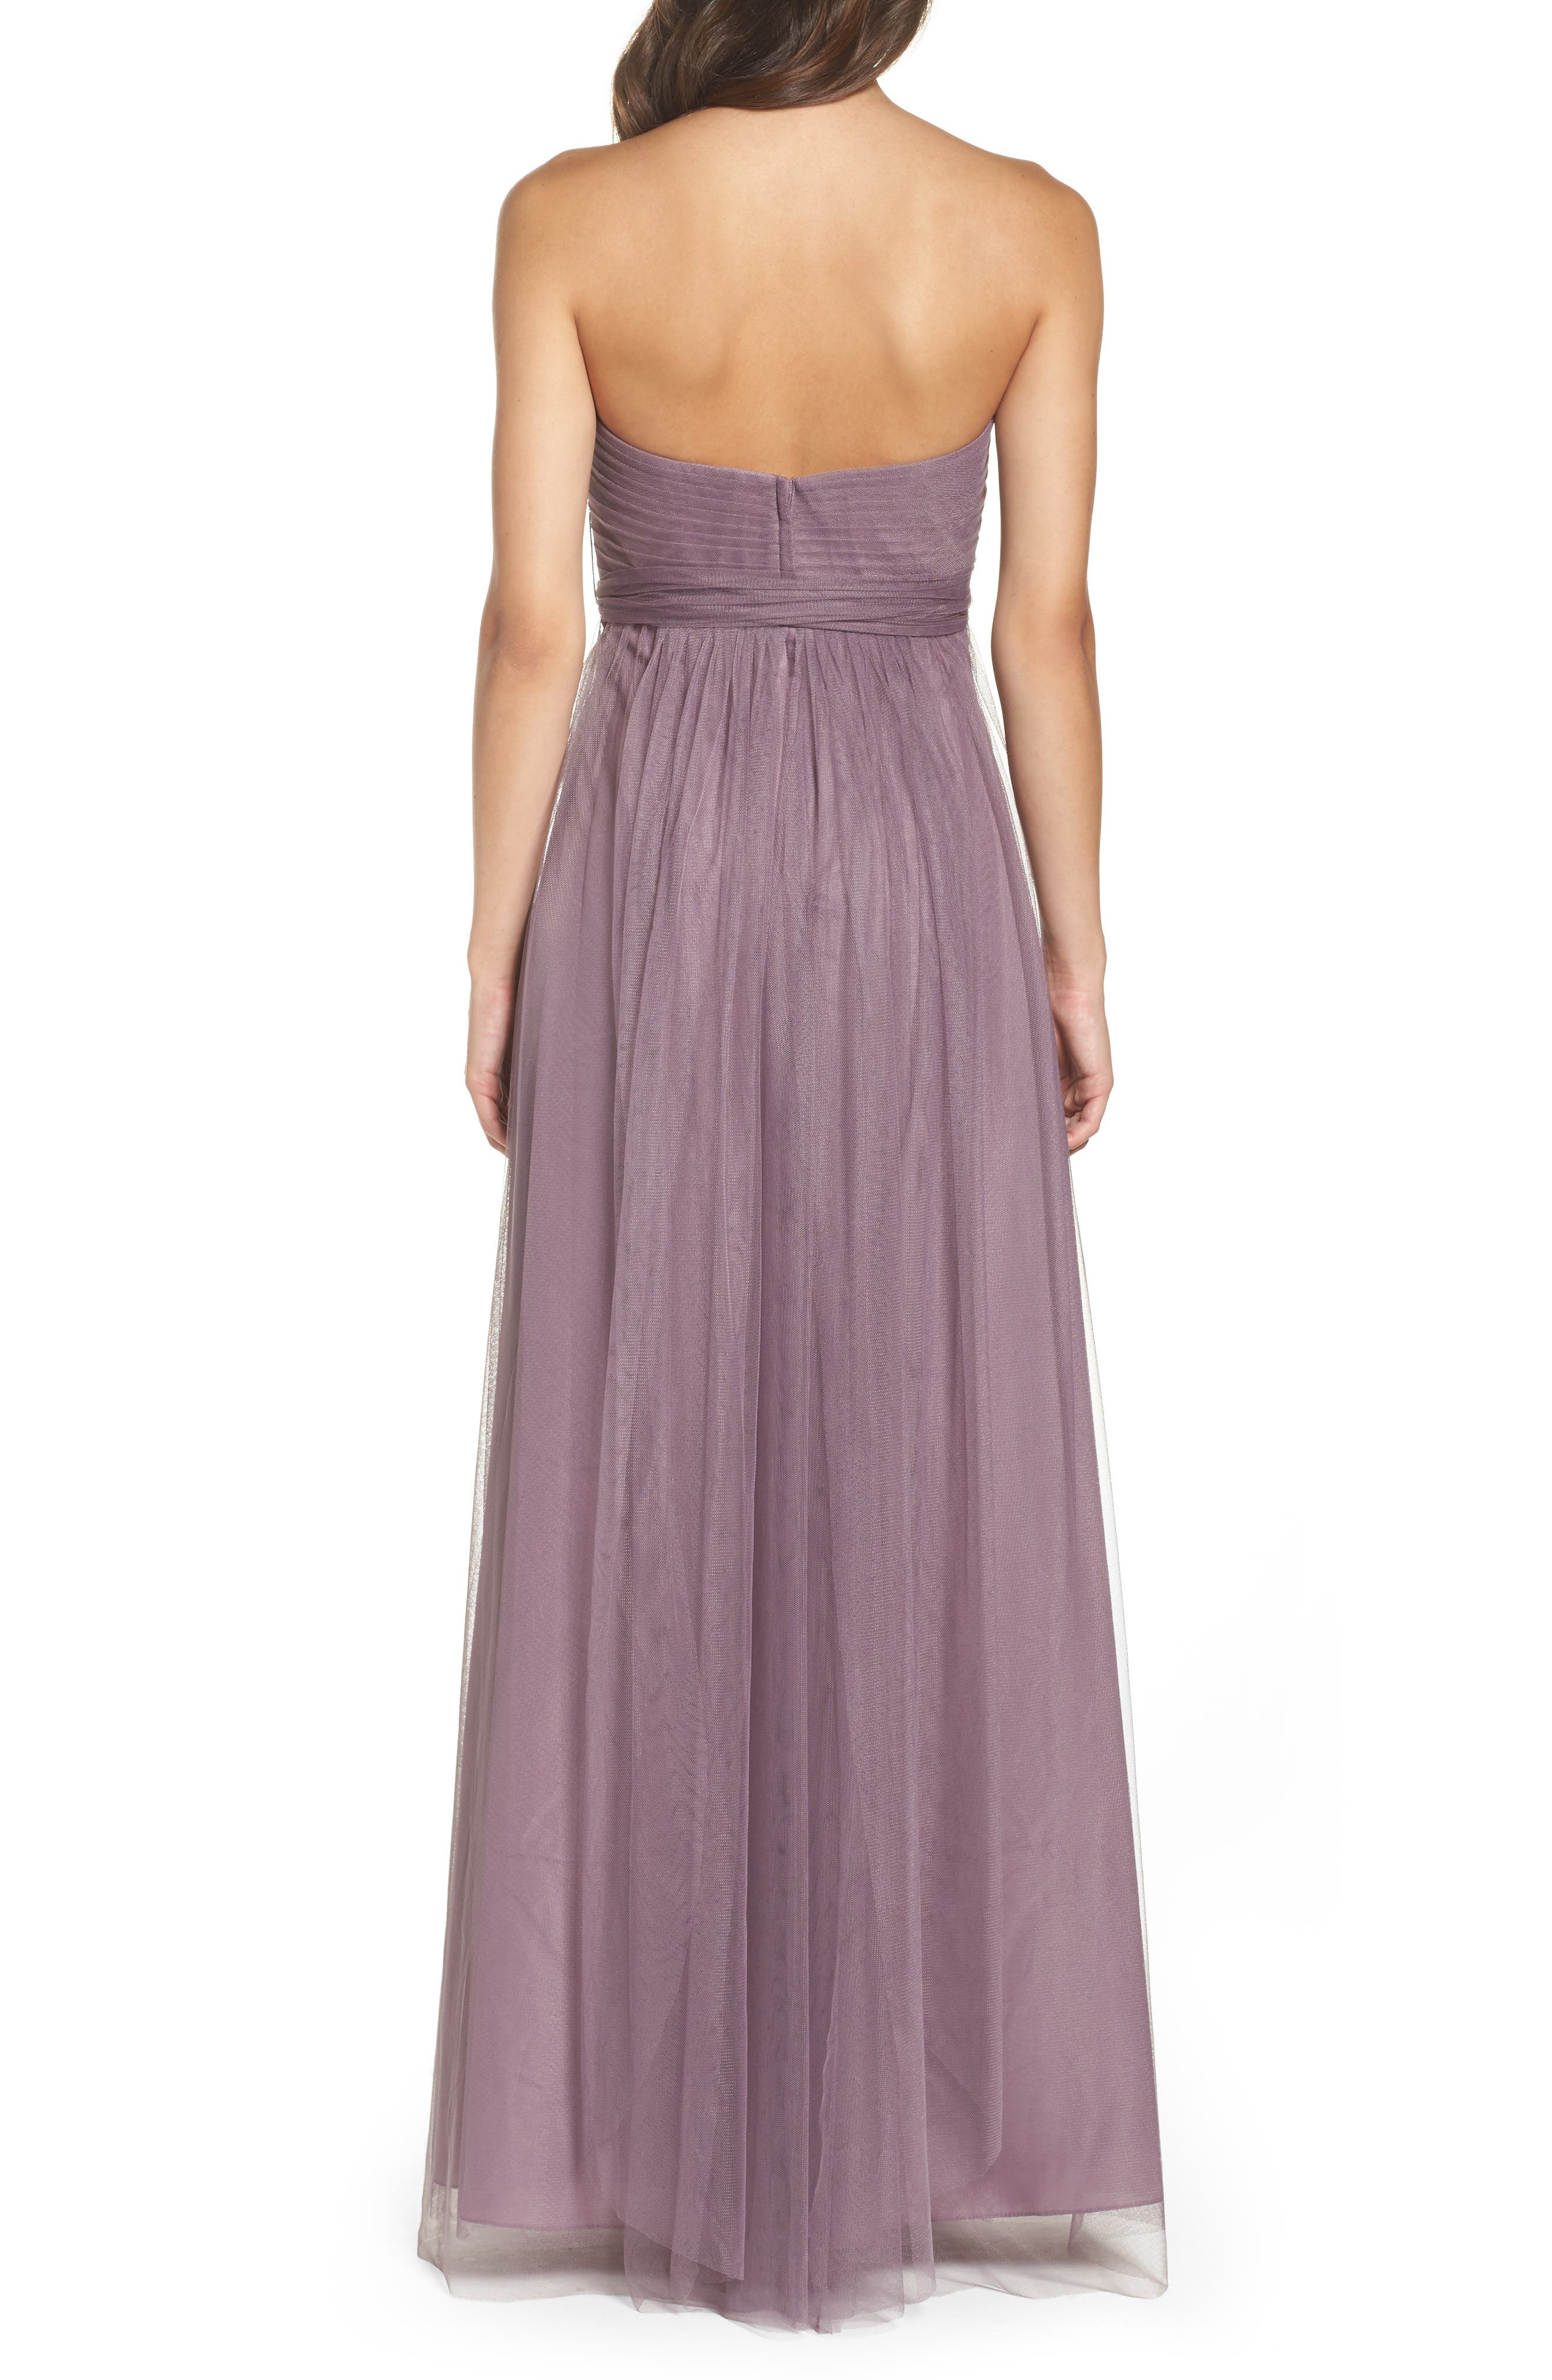 Annabelle Convertible Tulle Column Dress,                             Alternate thumbnail 69, color,